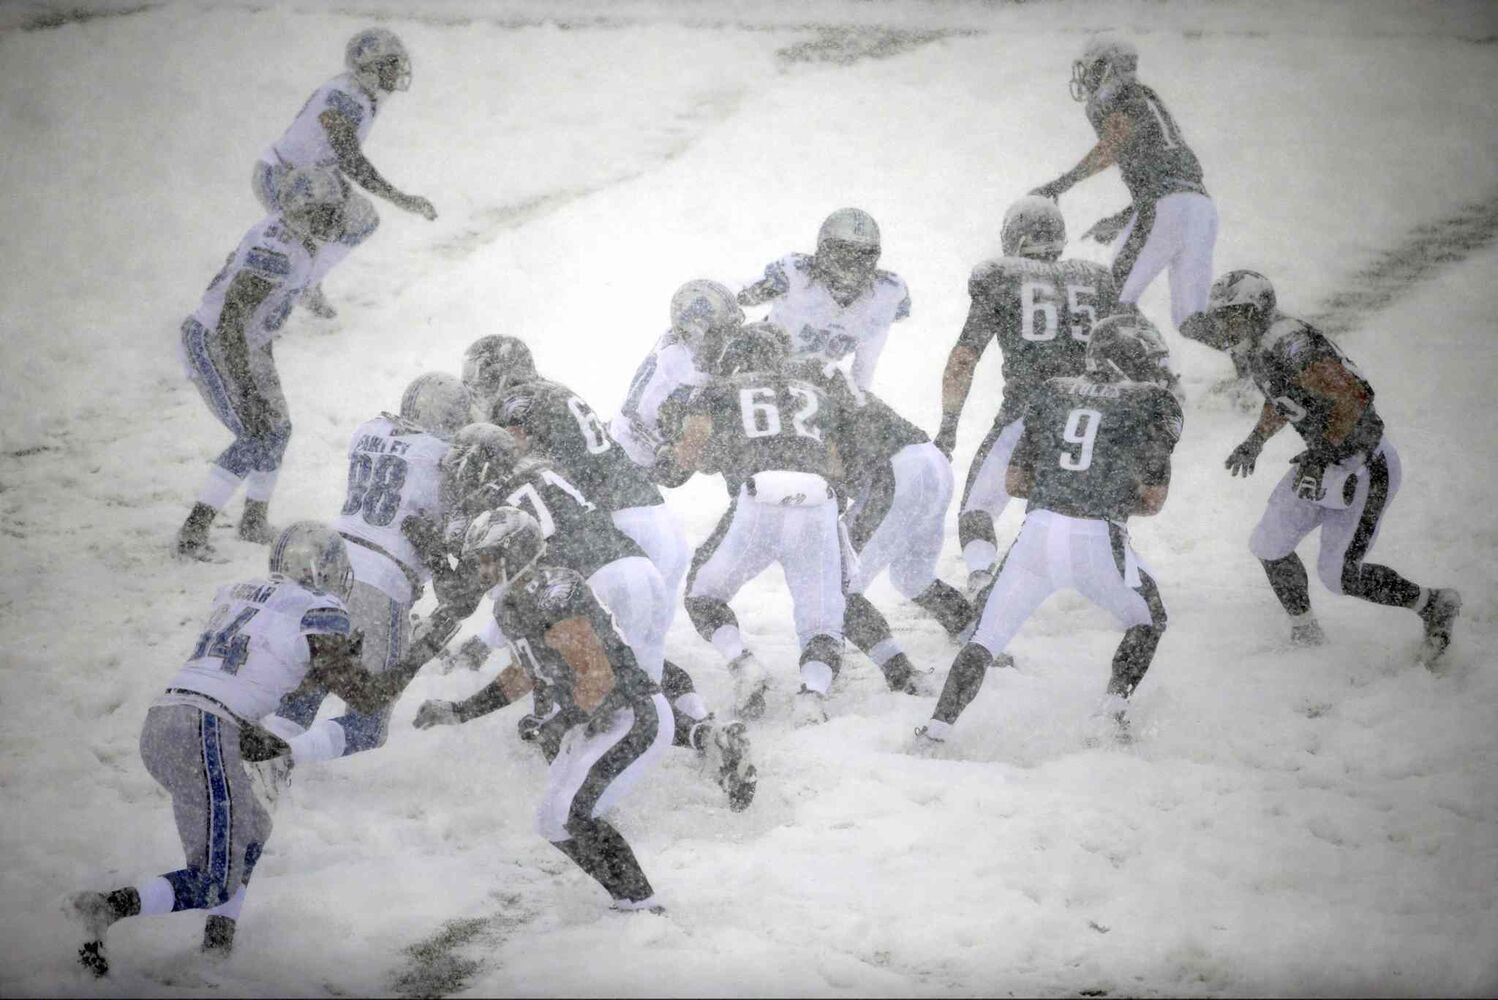 The Philadelphia Eagles and Detroit Lions battle it out in the snow in Philadelphia on Sunday. (Matt Rourke / The Associated Press)